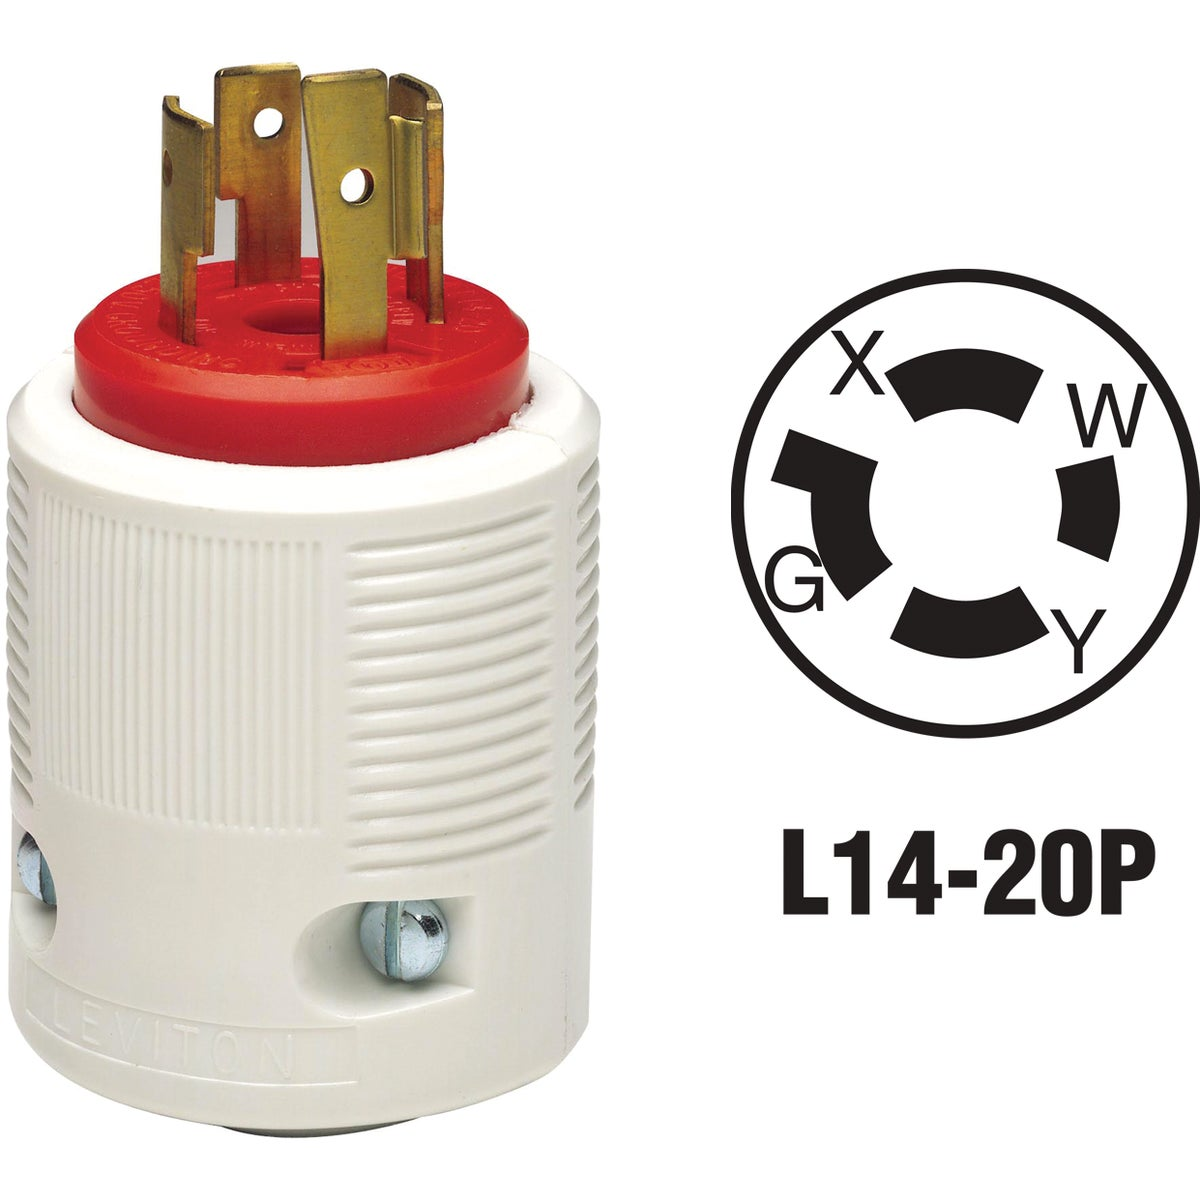 20A LOCKING CORD PLUG - 71420LP by Leviton Mfg Co